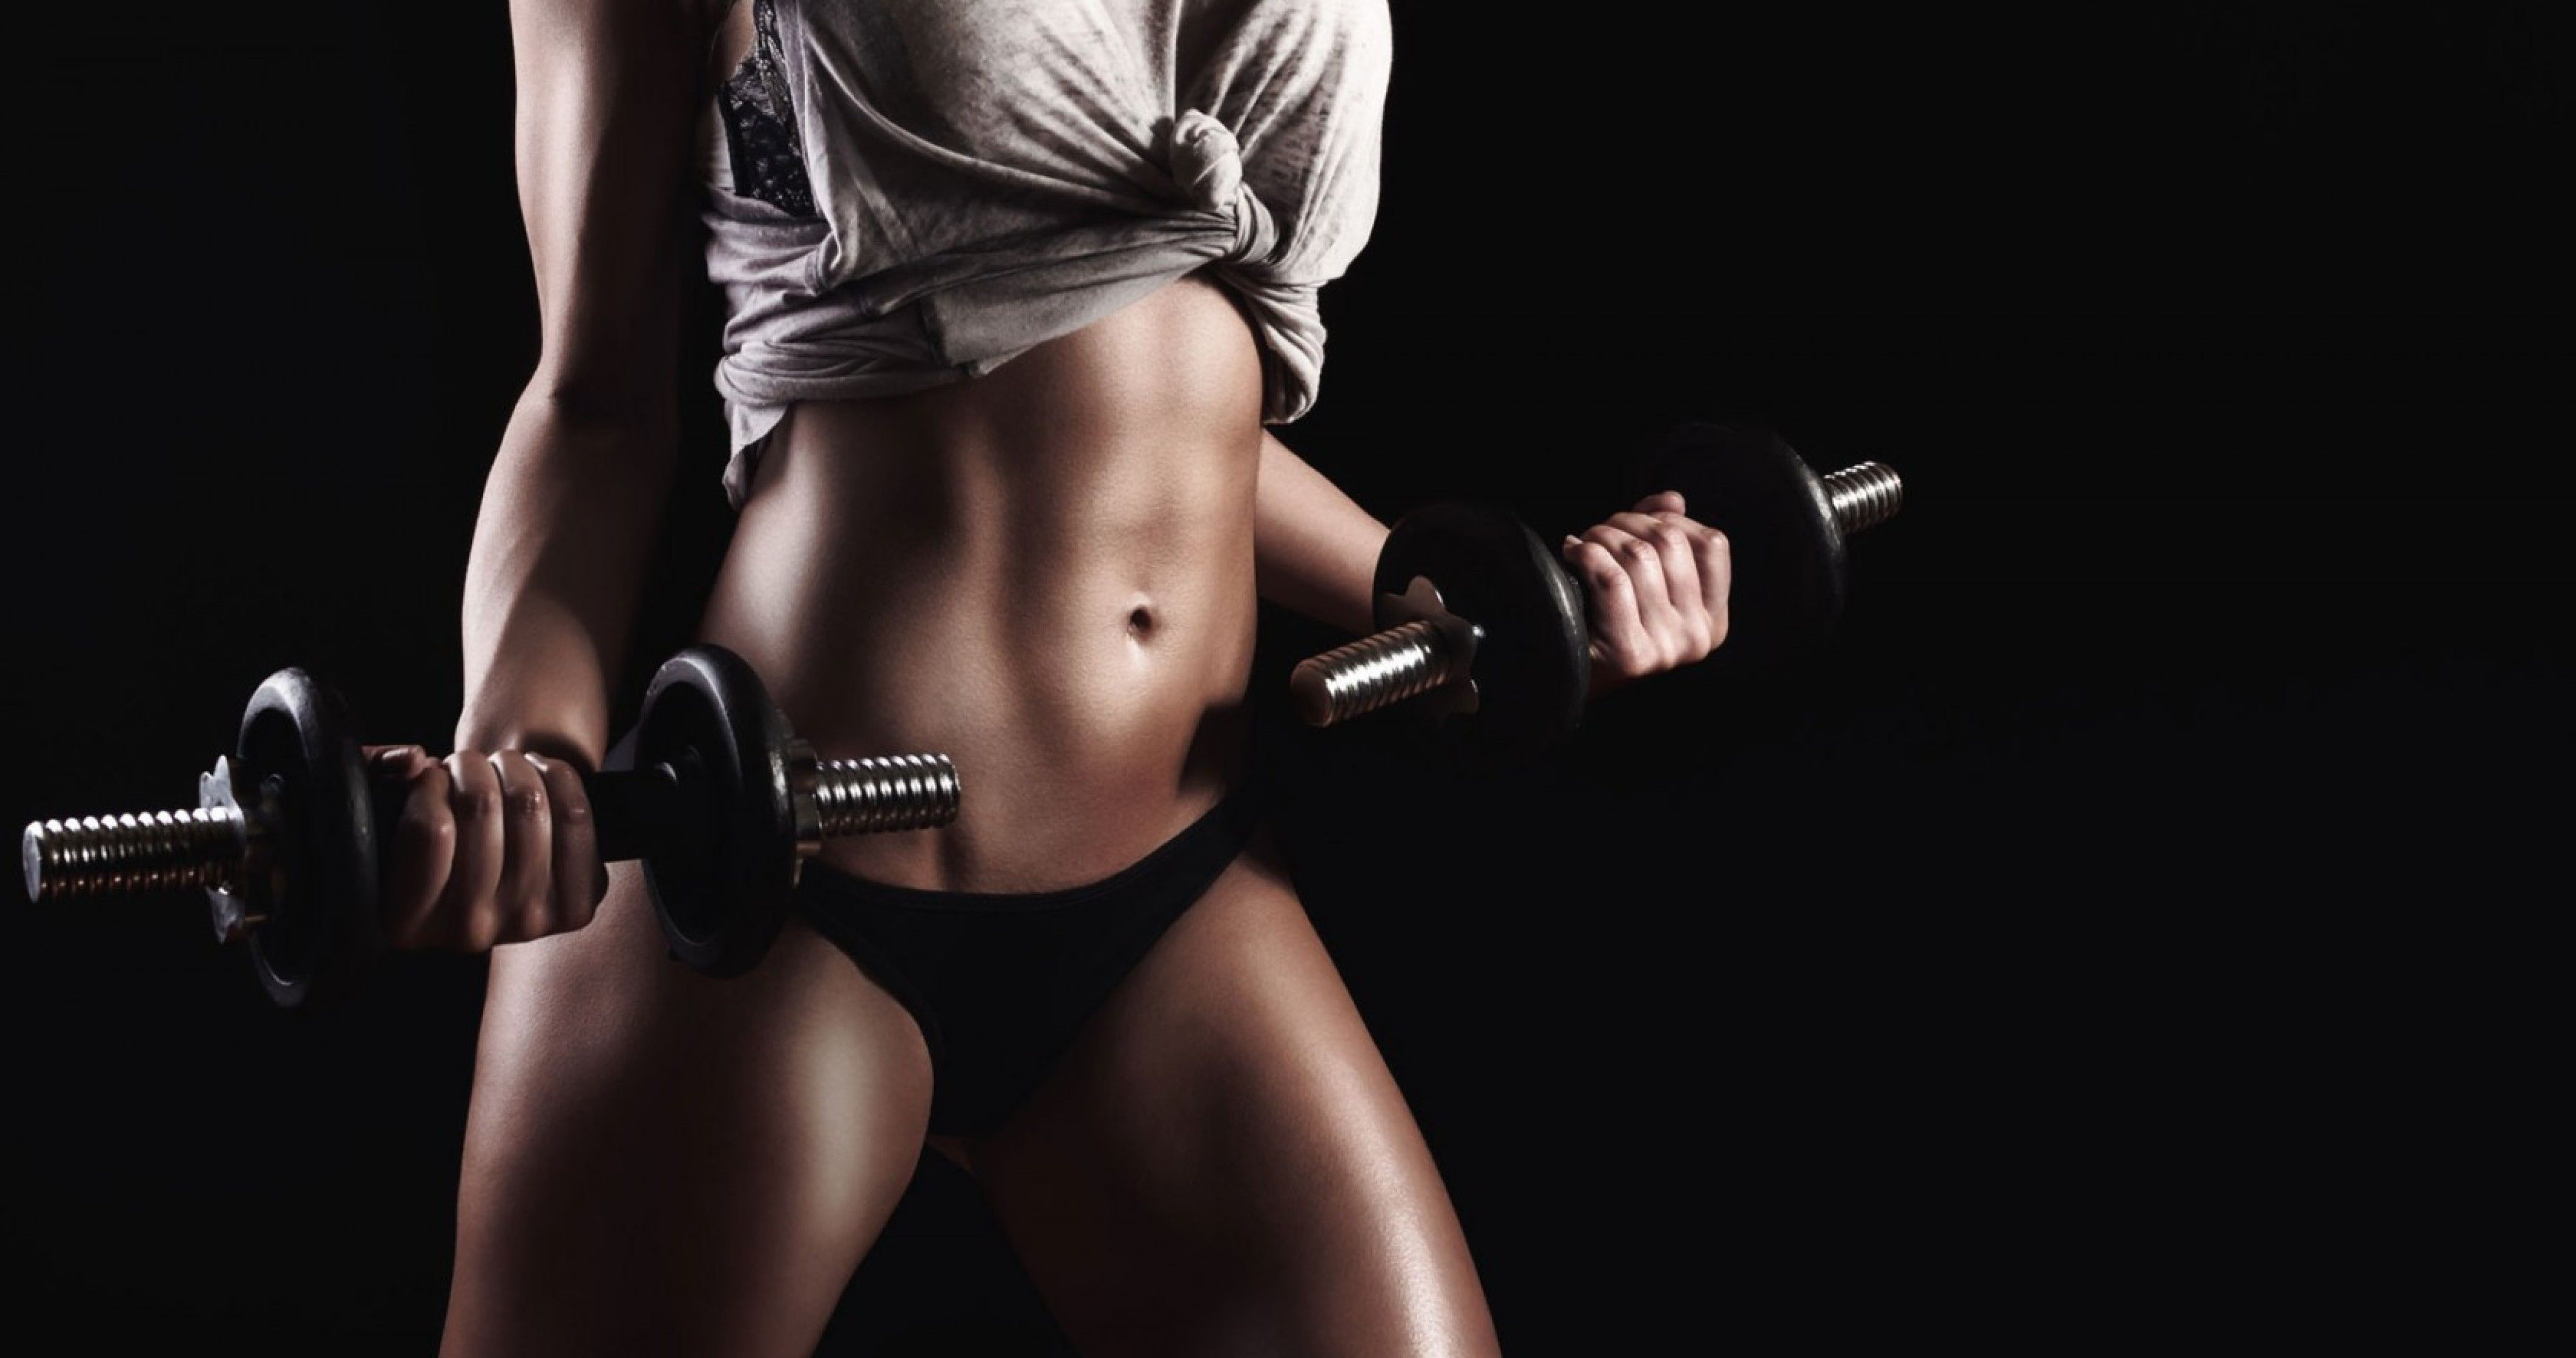 A Fitness Model Posing With Dumbells Health HD Wallpapers